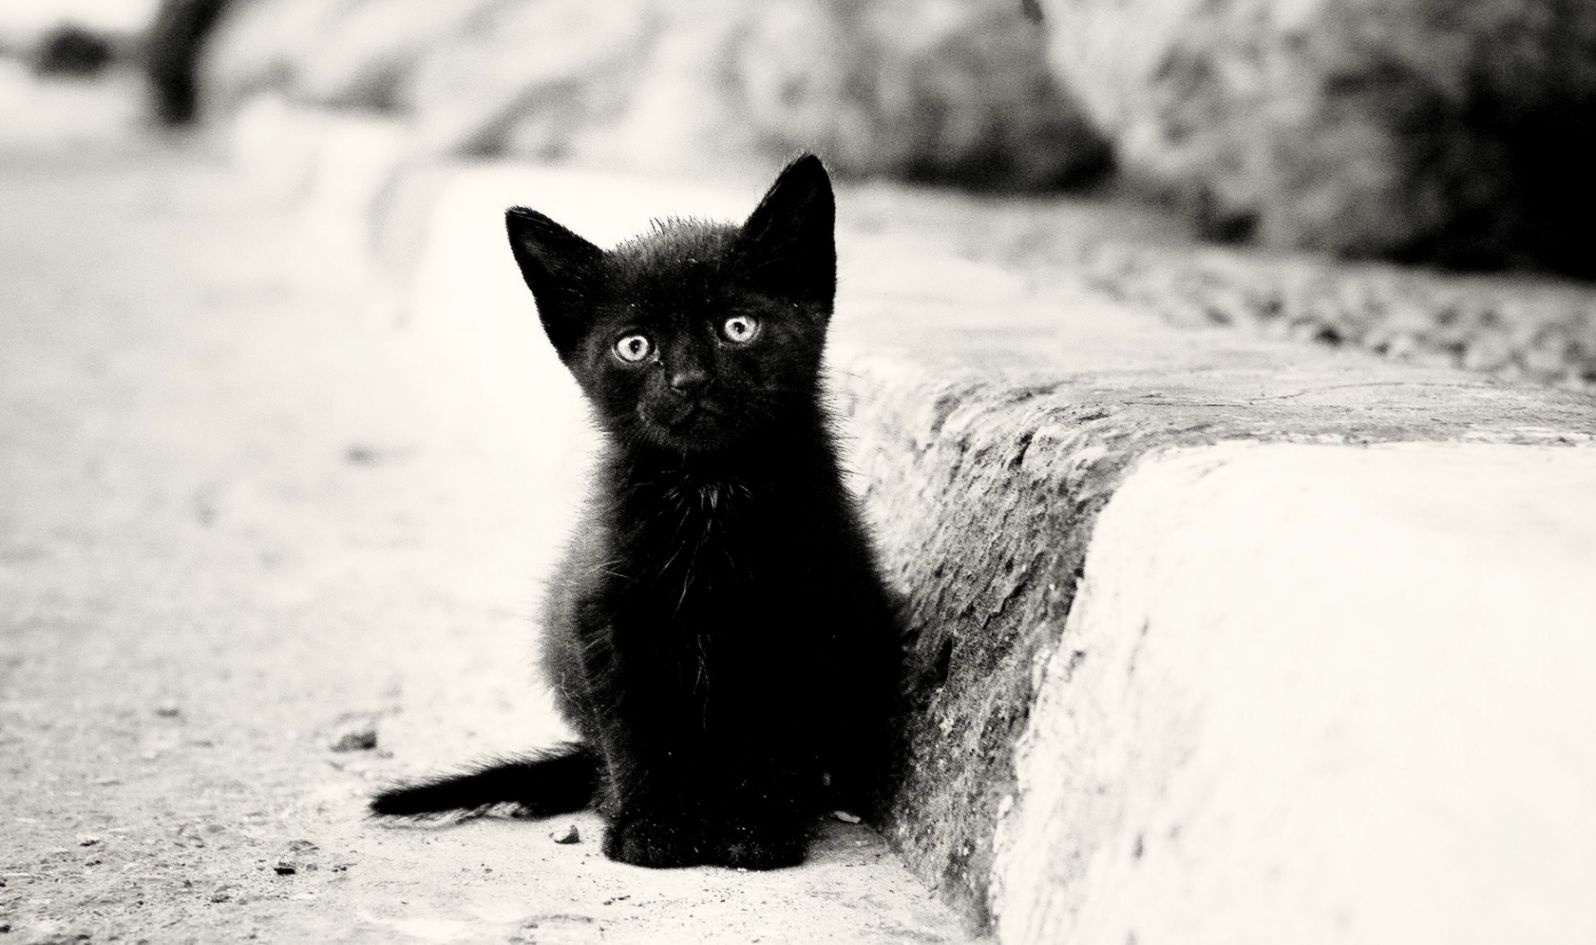 Cute Black And White Kitten Wallpaper All Hd Wallpapers Gallery